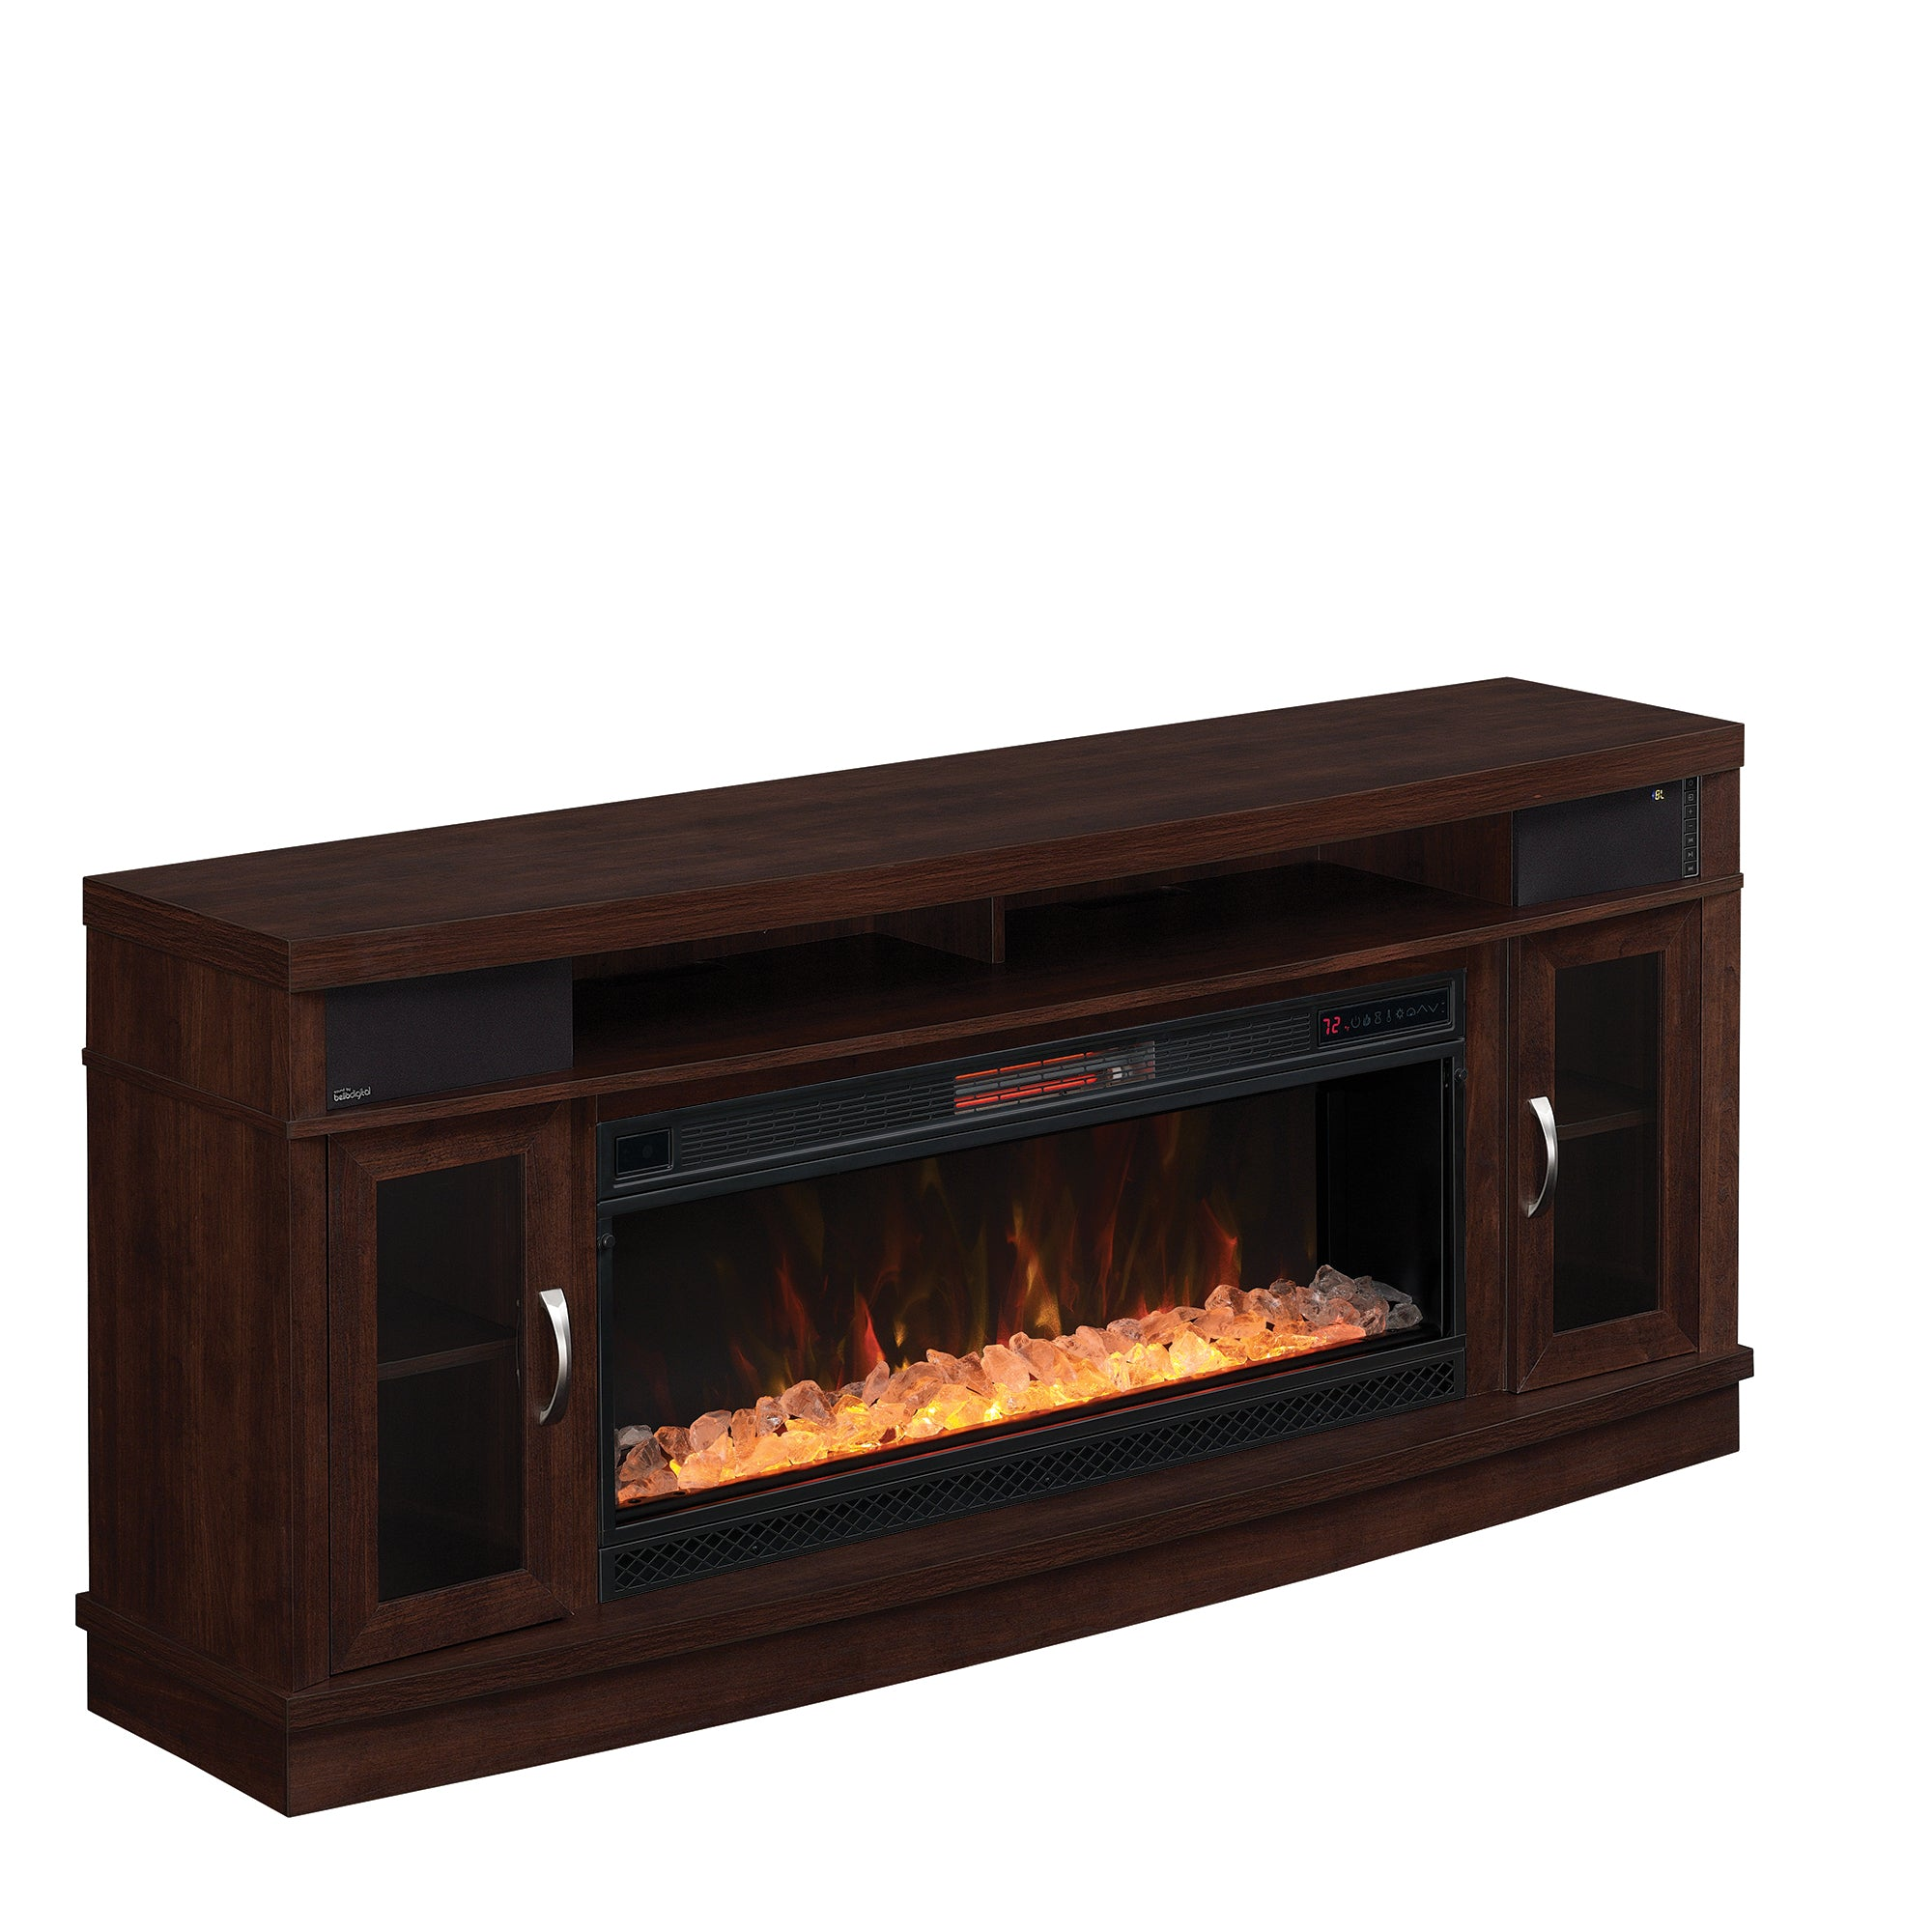 Deerfield Media and Sound Fireplace